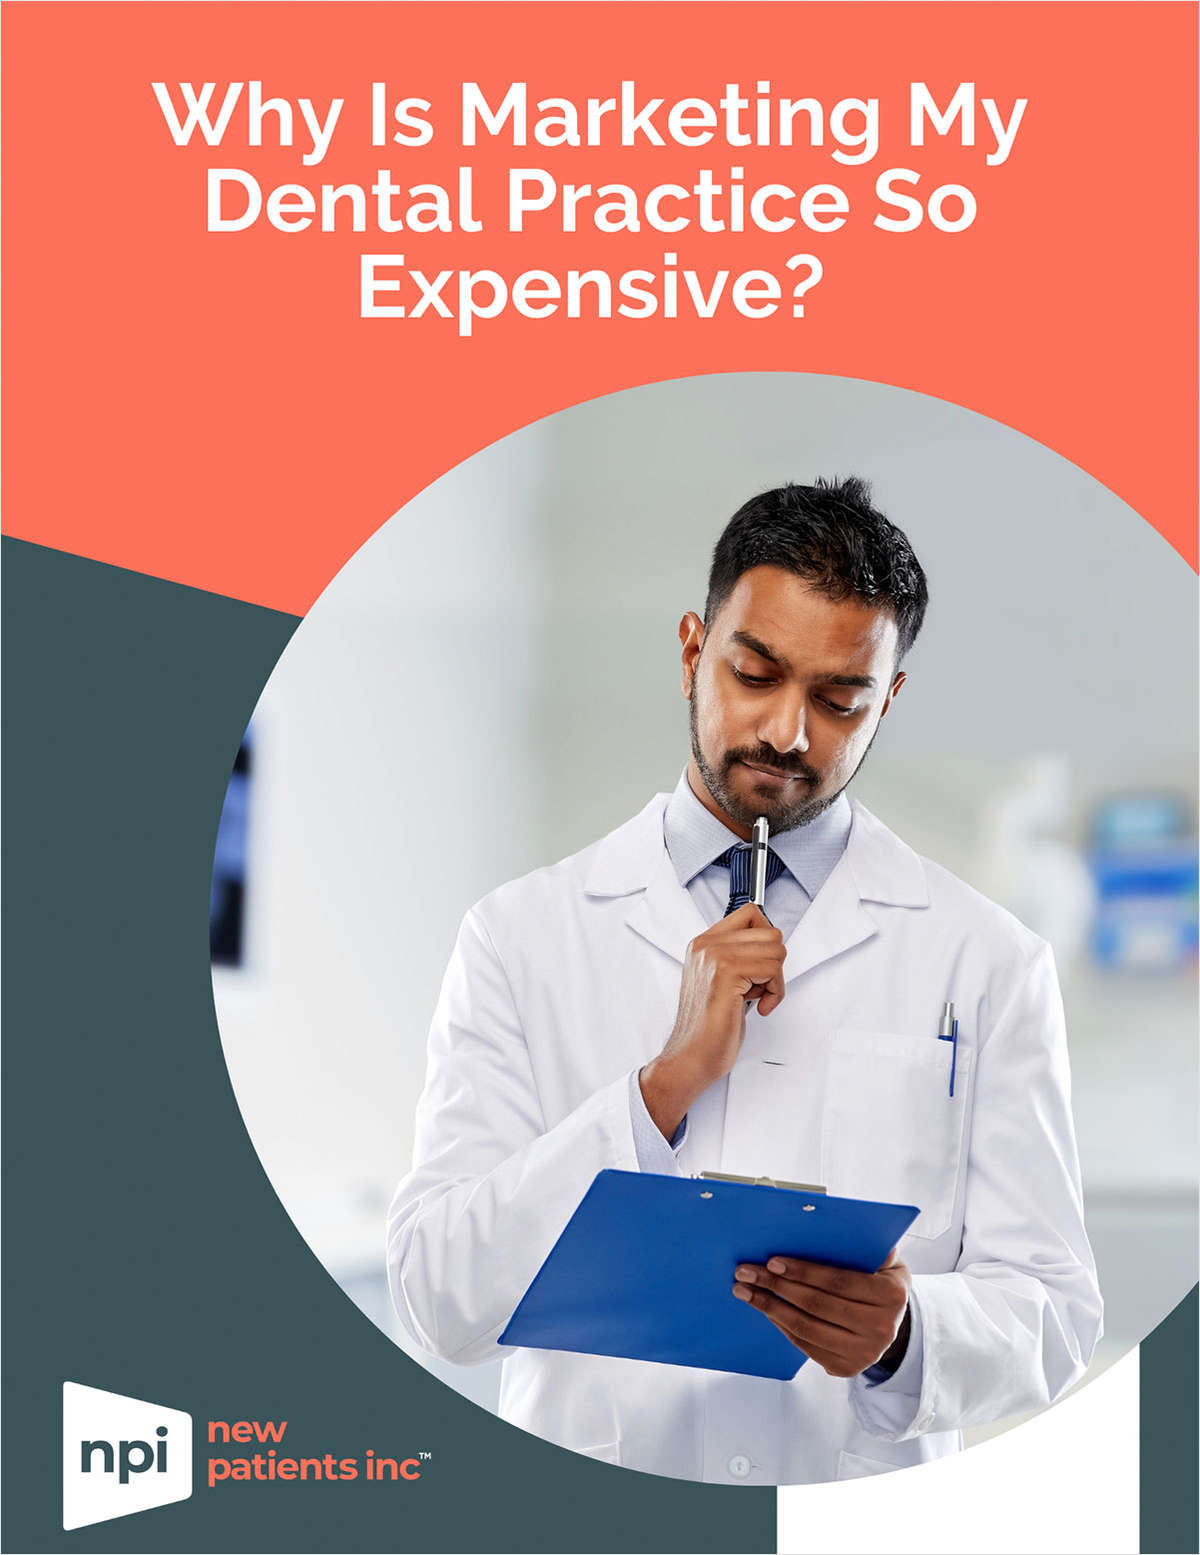 Why is Marketing My Dental Practice So Expensive?